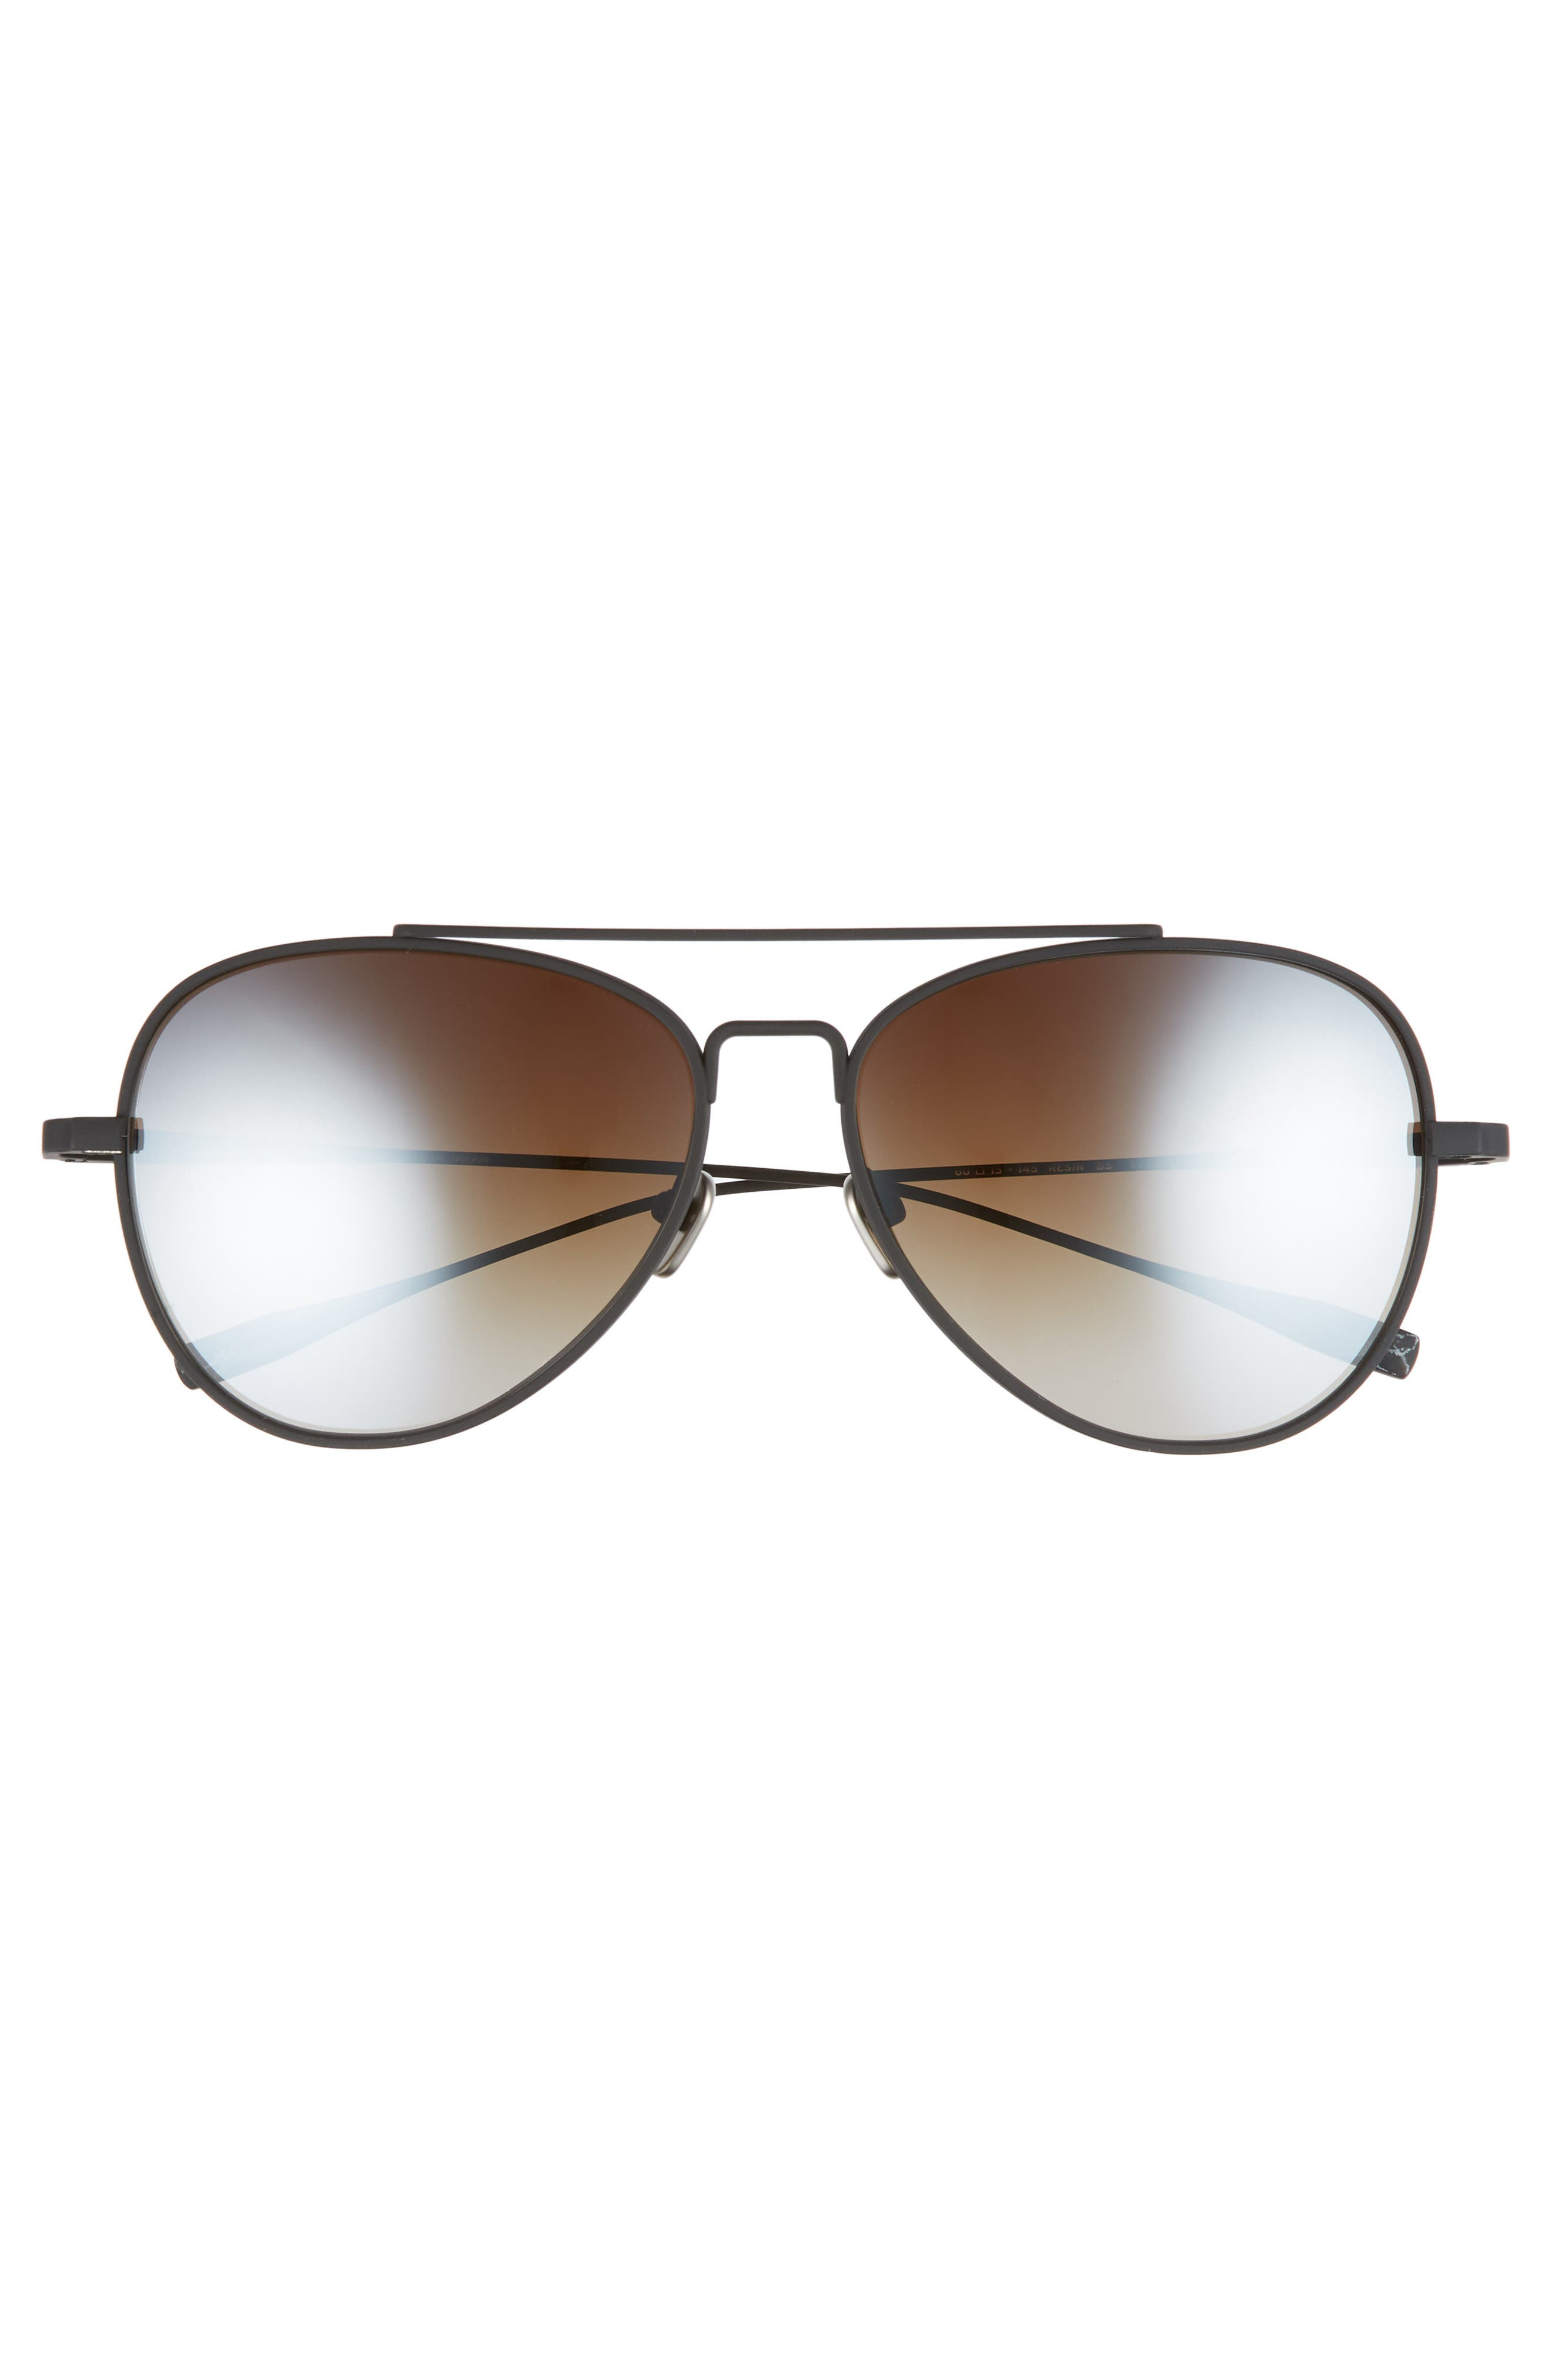 959b1f1fcfdc Men s SALT. Sunglasses   Eyeglasses